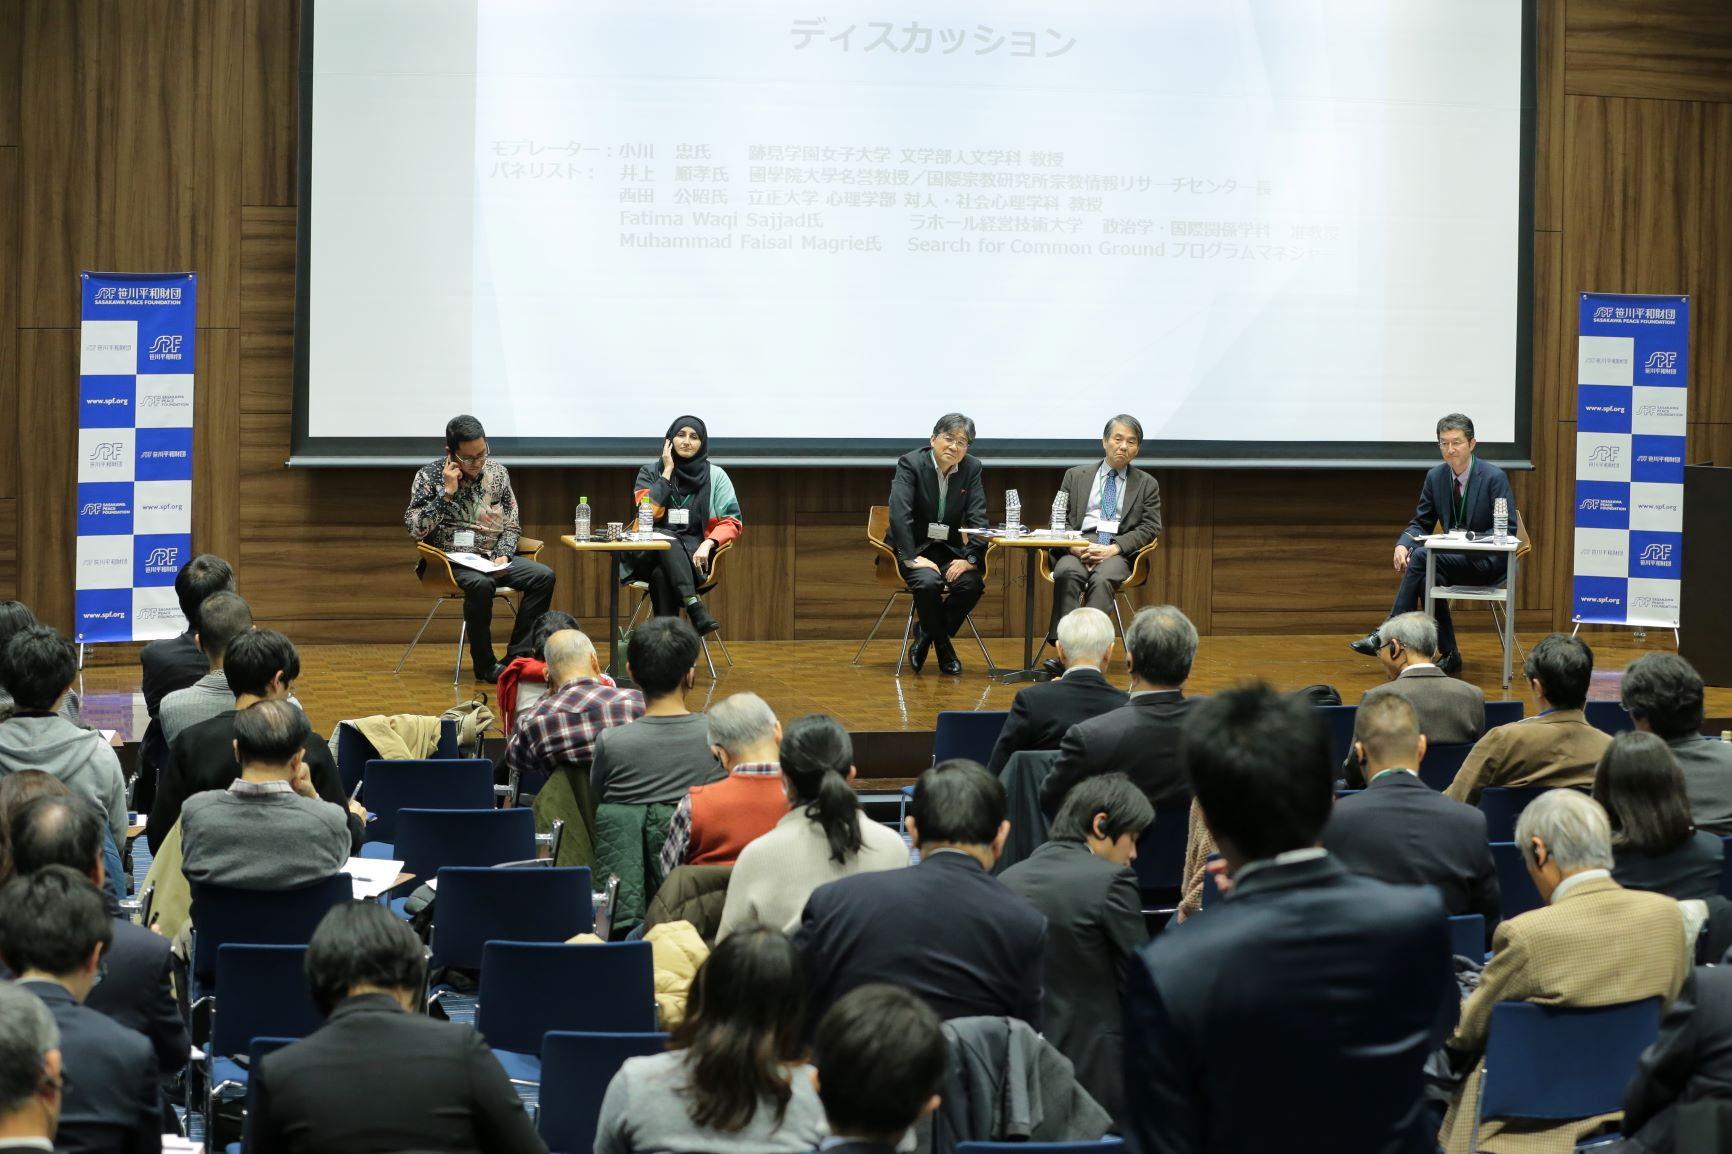 Deradicalization and social reintegration in Pakistan, Indonesia, and Japan